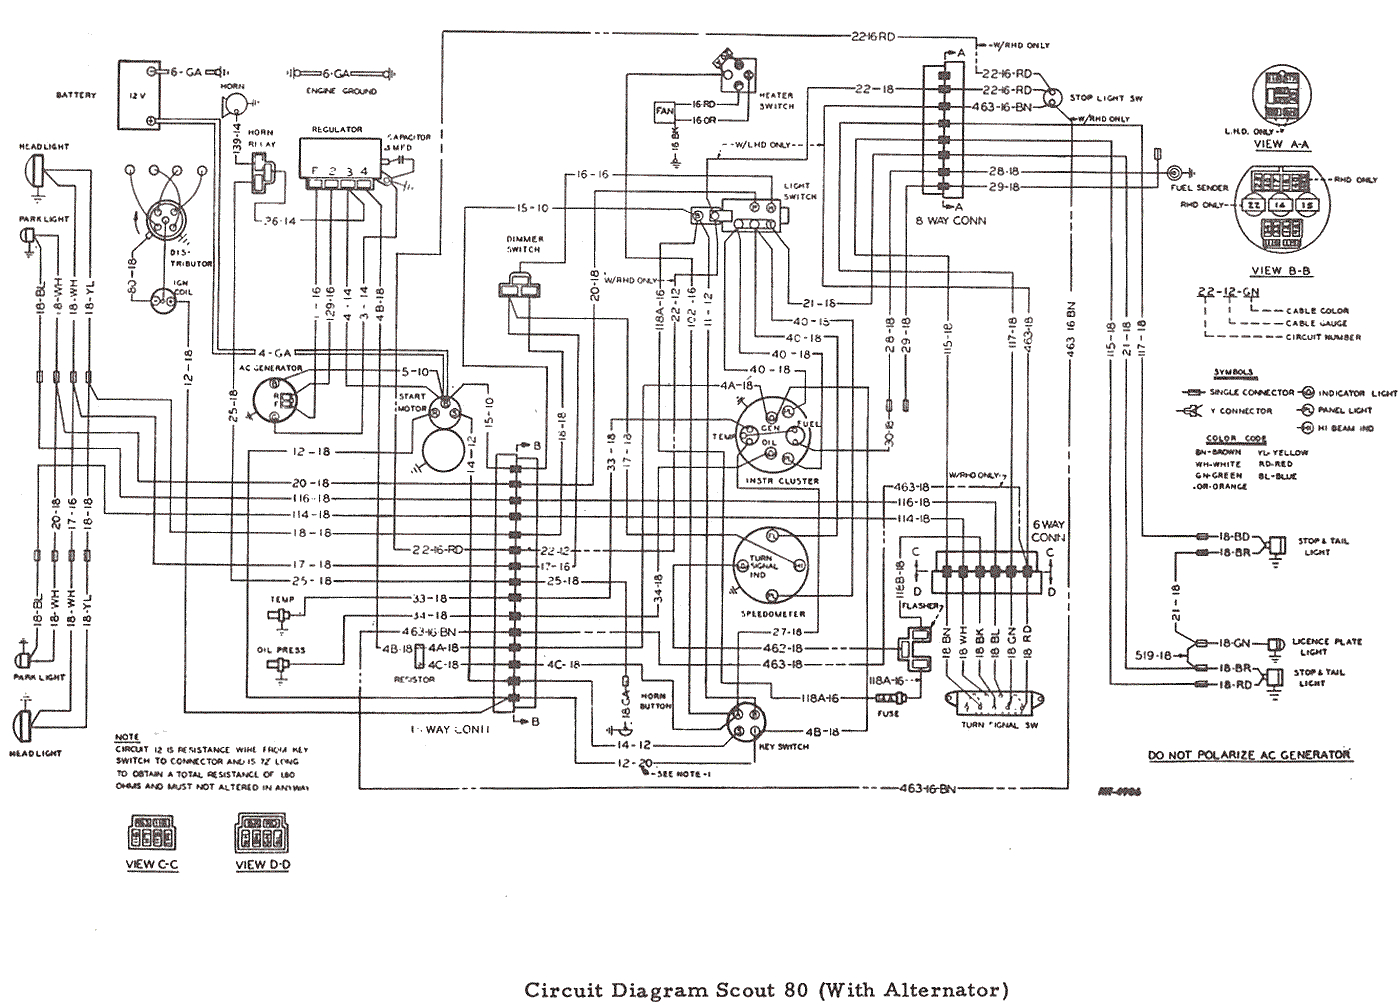 1965 scout engine wiring diagram wiring diagram pass front light wiring harness diagram19kb